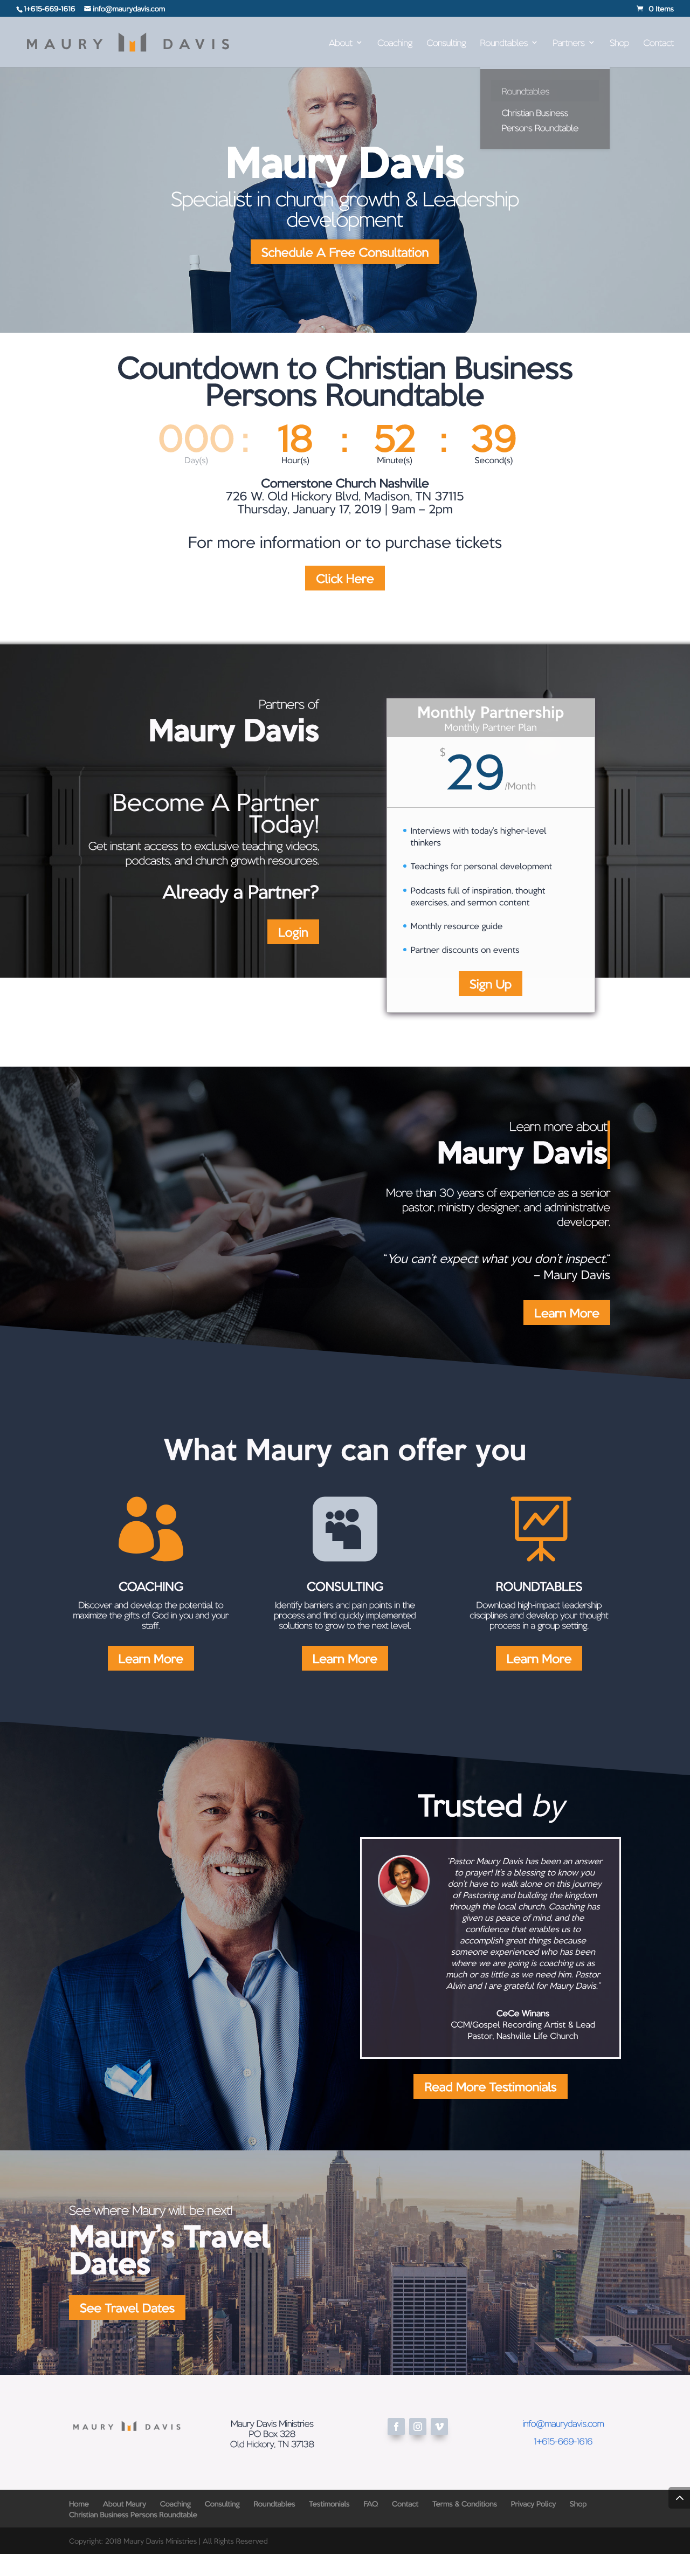 maury-davis-home-page-after.png